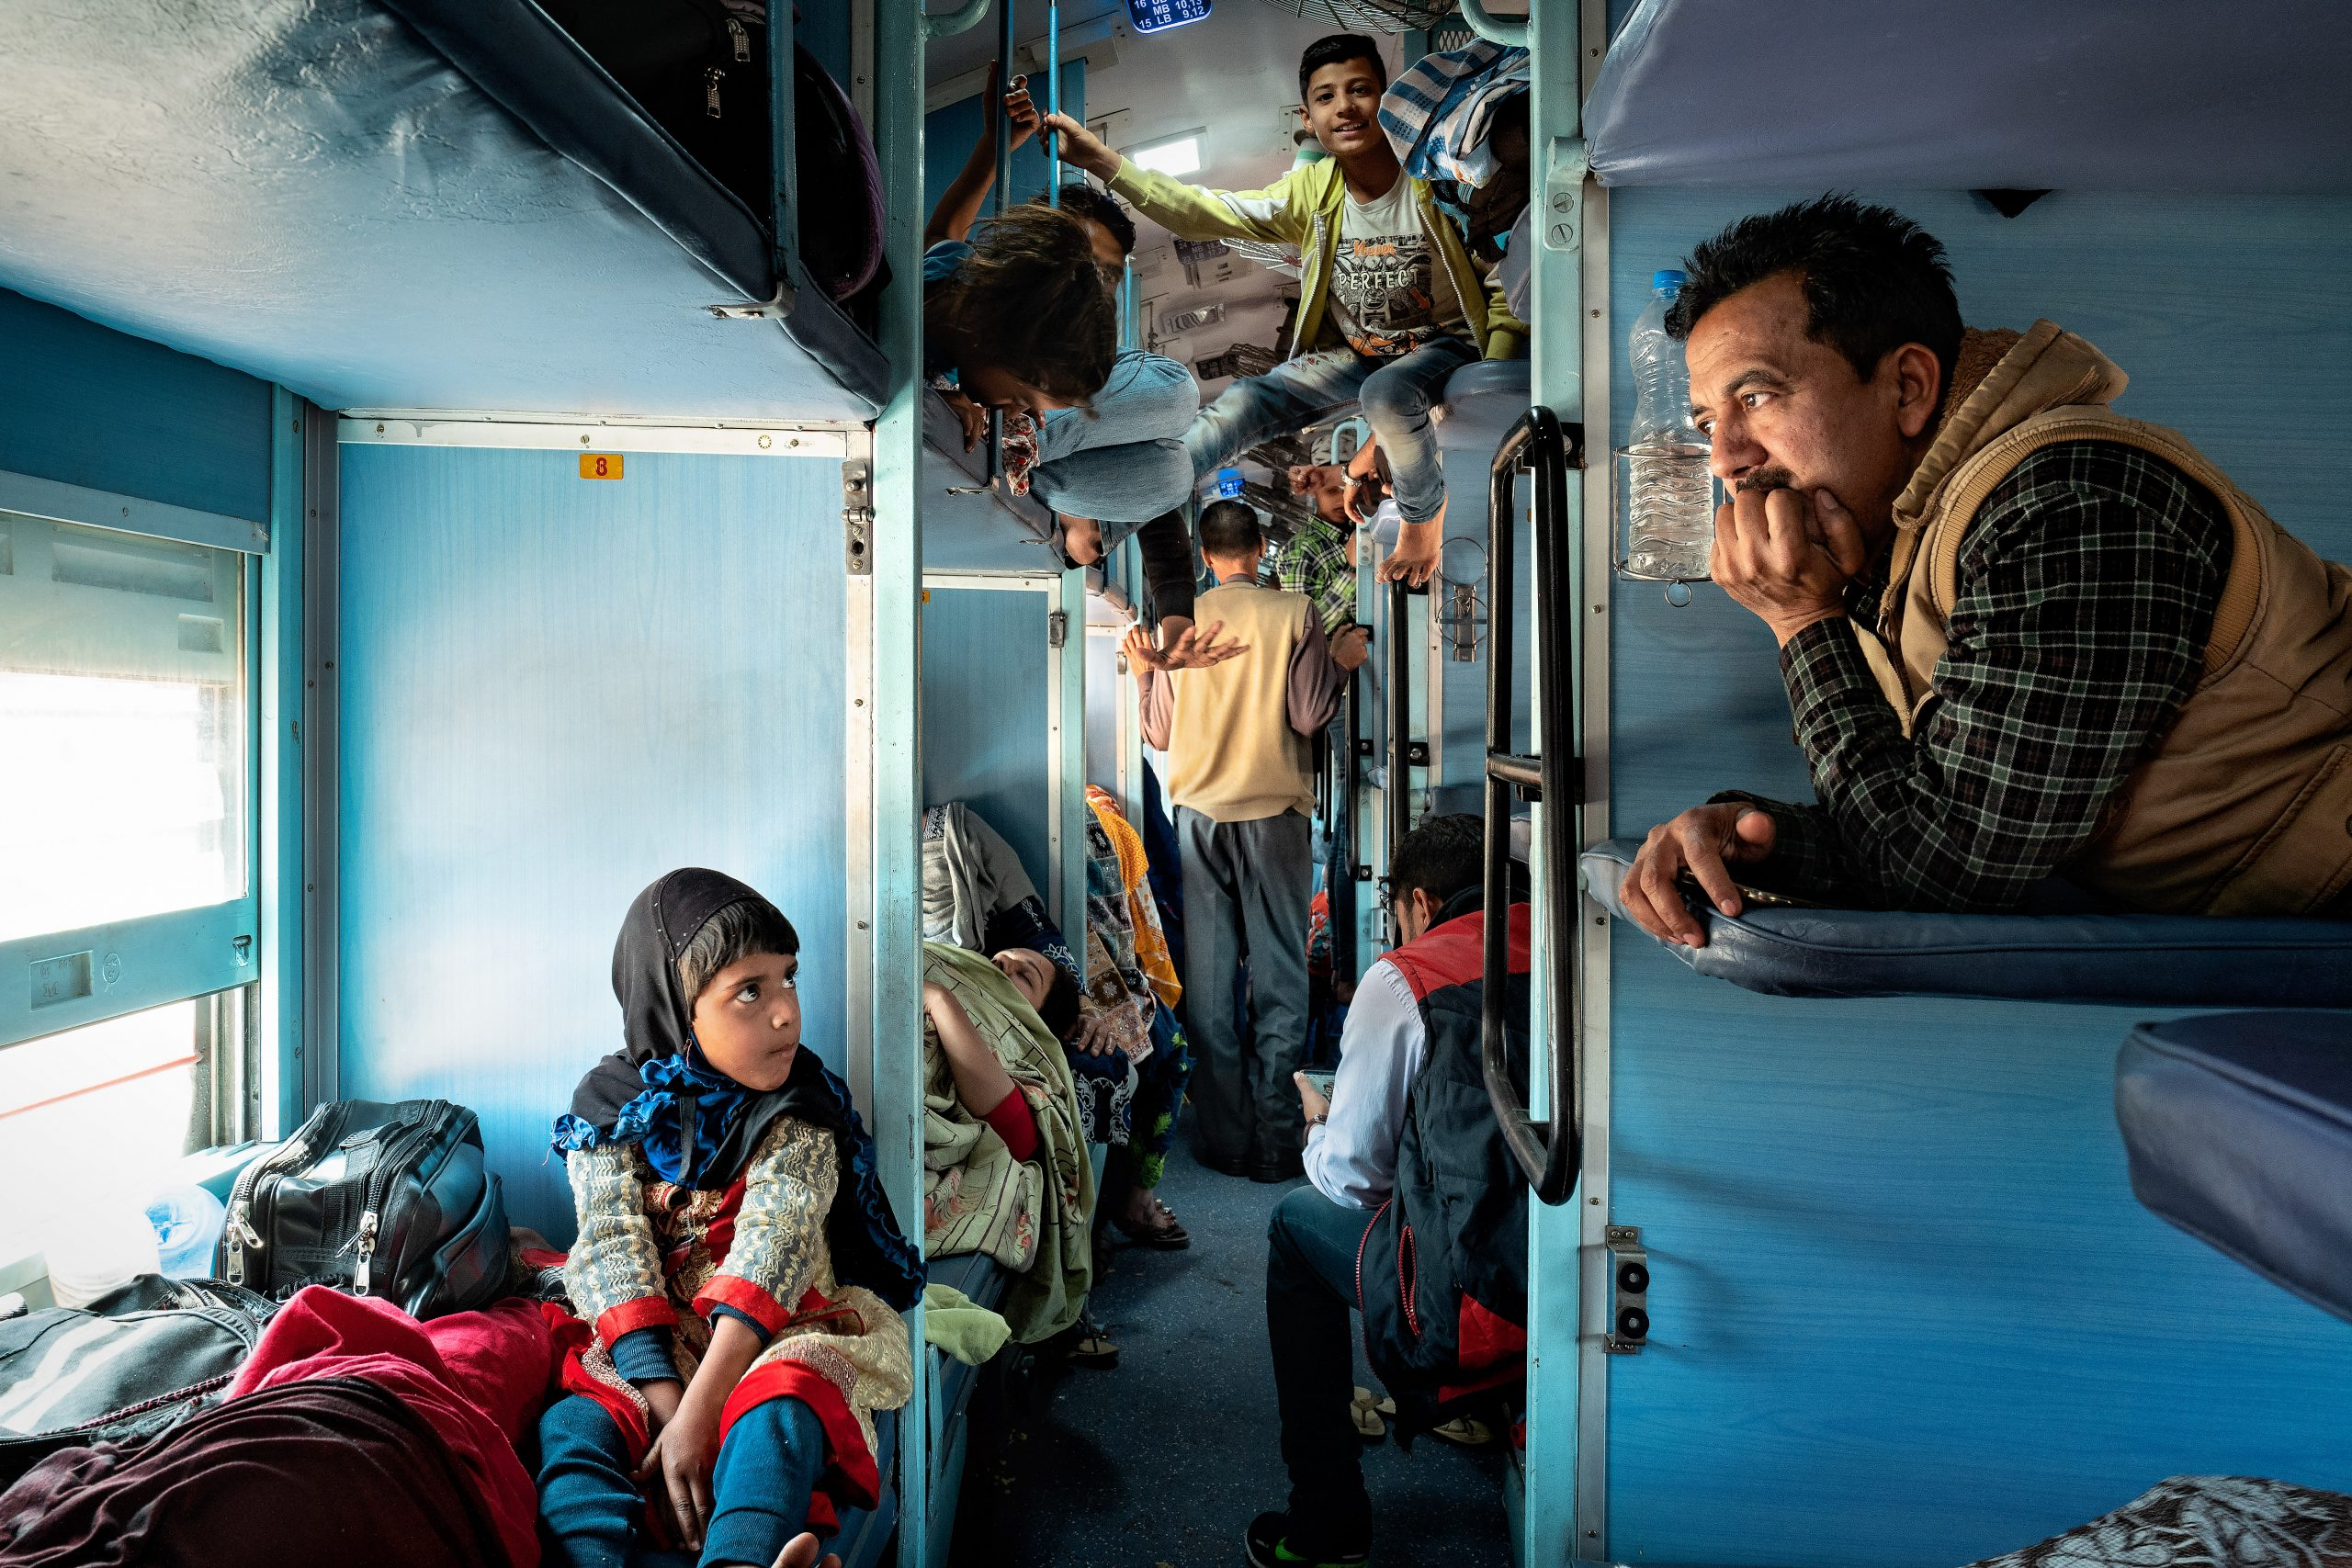 street color photograph of people in a train shot in Jaipur, India, by Giuliano Lo Re